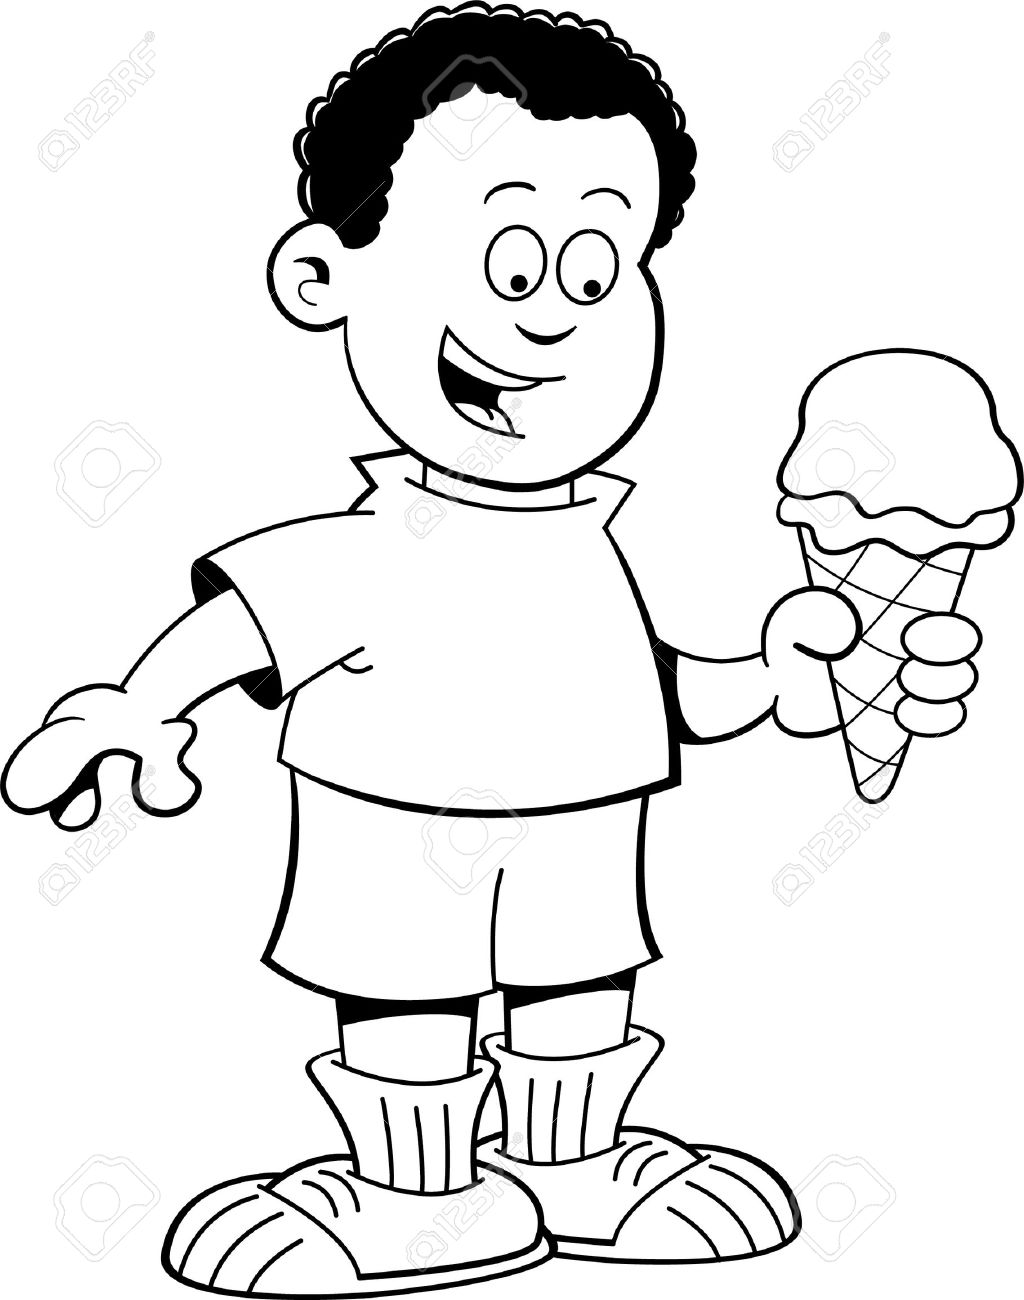 Best Ice Cream Clipart Black And White